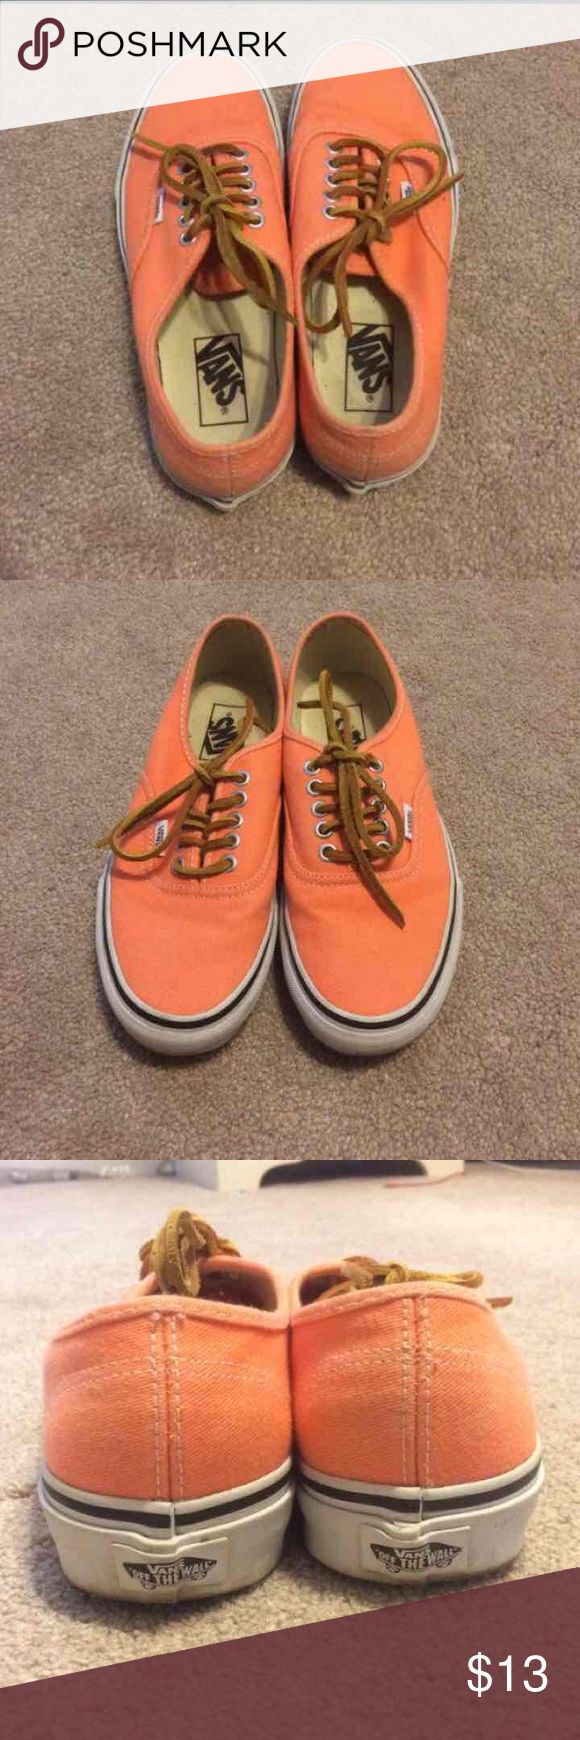 Coral Vans Coral colored vans with leather laces in good condition! Vans Shoes Sneakers